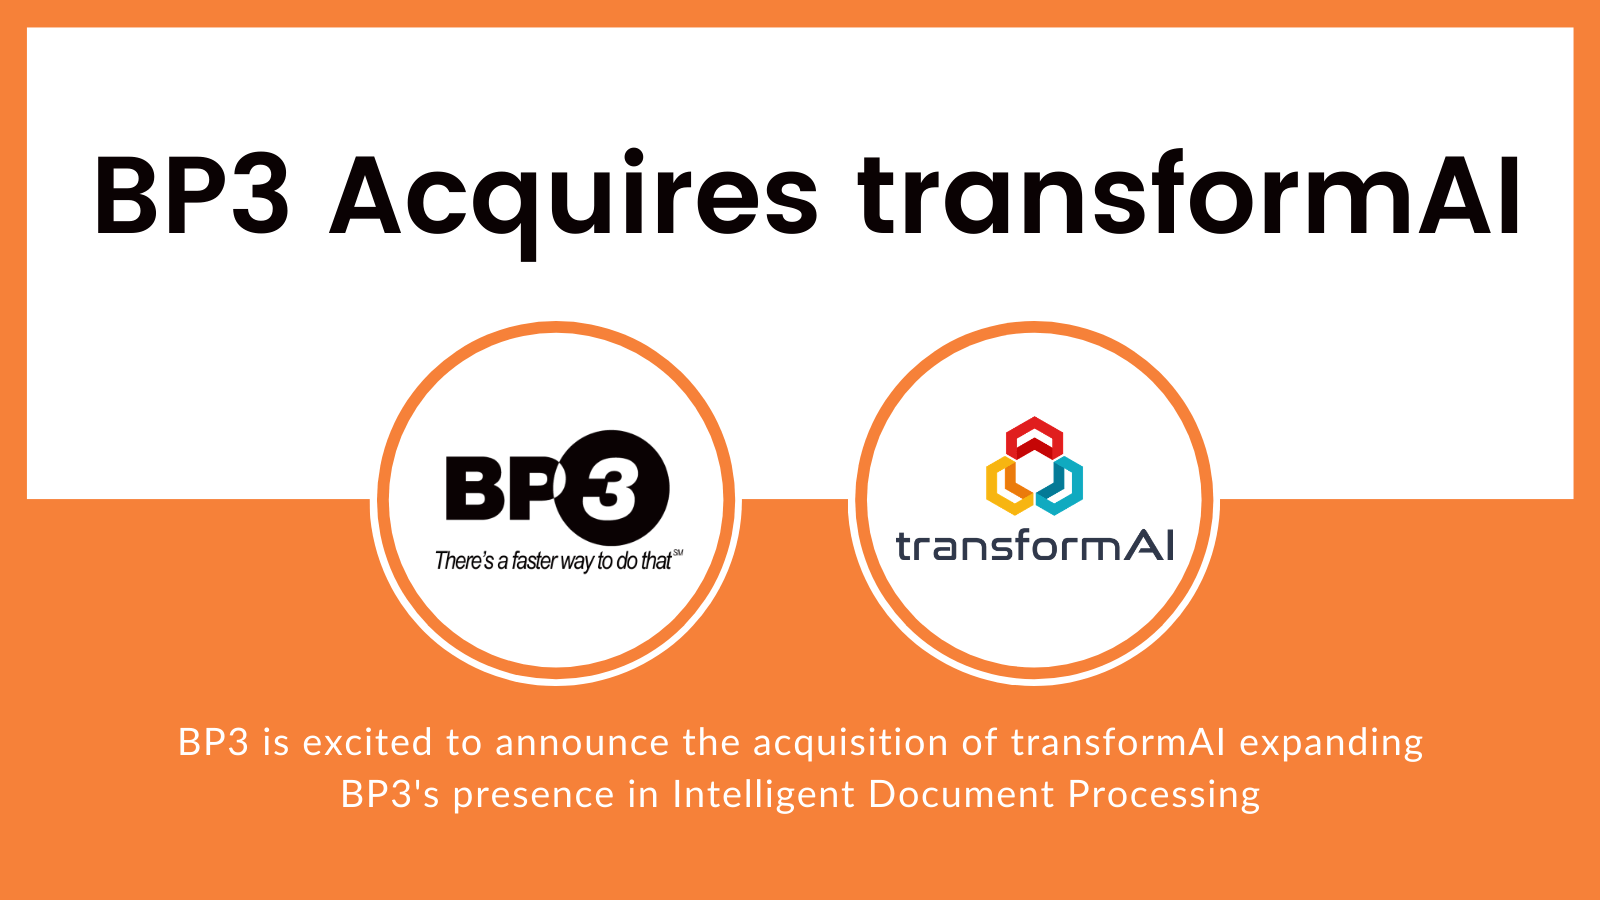 BP3 Global, an Austin, Texas based provider of automation services and solutions, today announced that it has acquired transformAI, a San Jose, CA based automation solution provider specializing in intelligent document processing (IDP), combining robotic process automation (RPA) and artificial intelligence (AI).